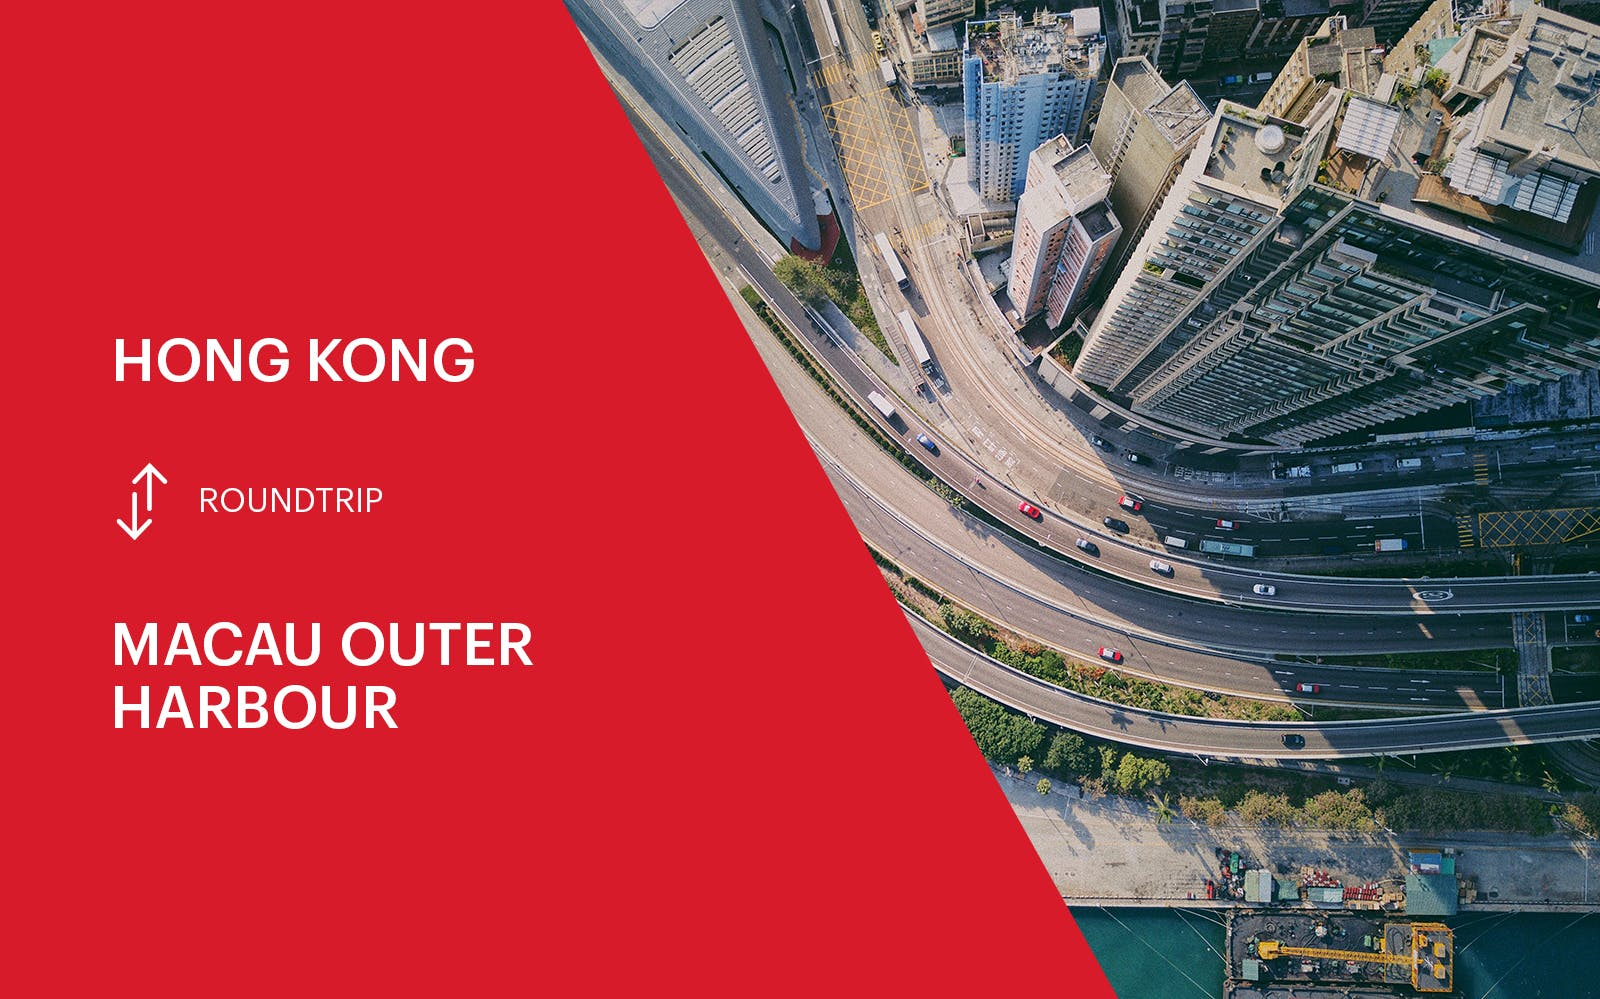 Turbojet Ferry Transfers Between HK & Macau Outer Harbour- Round Trip